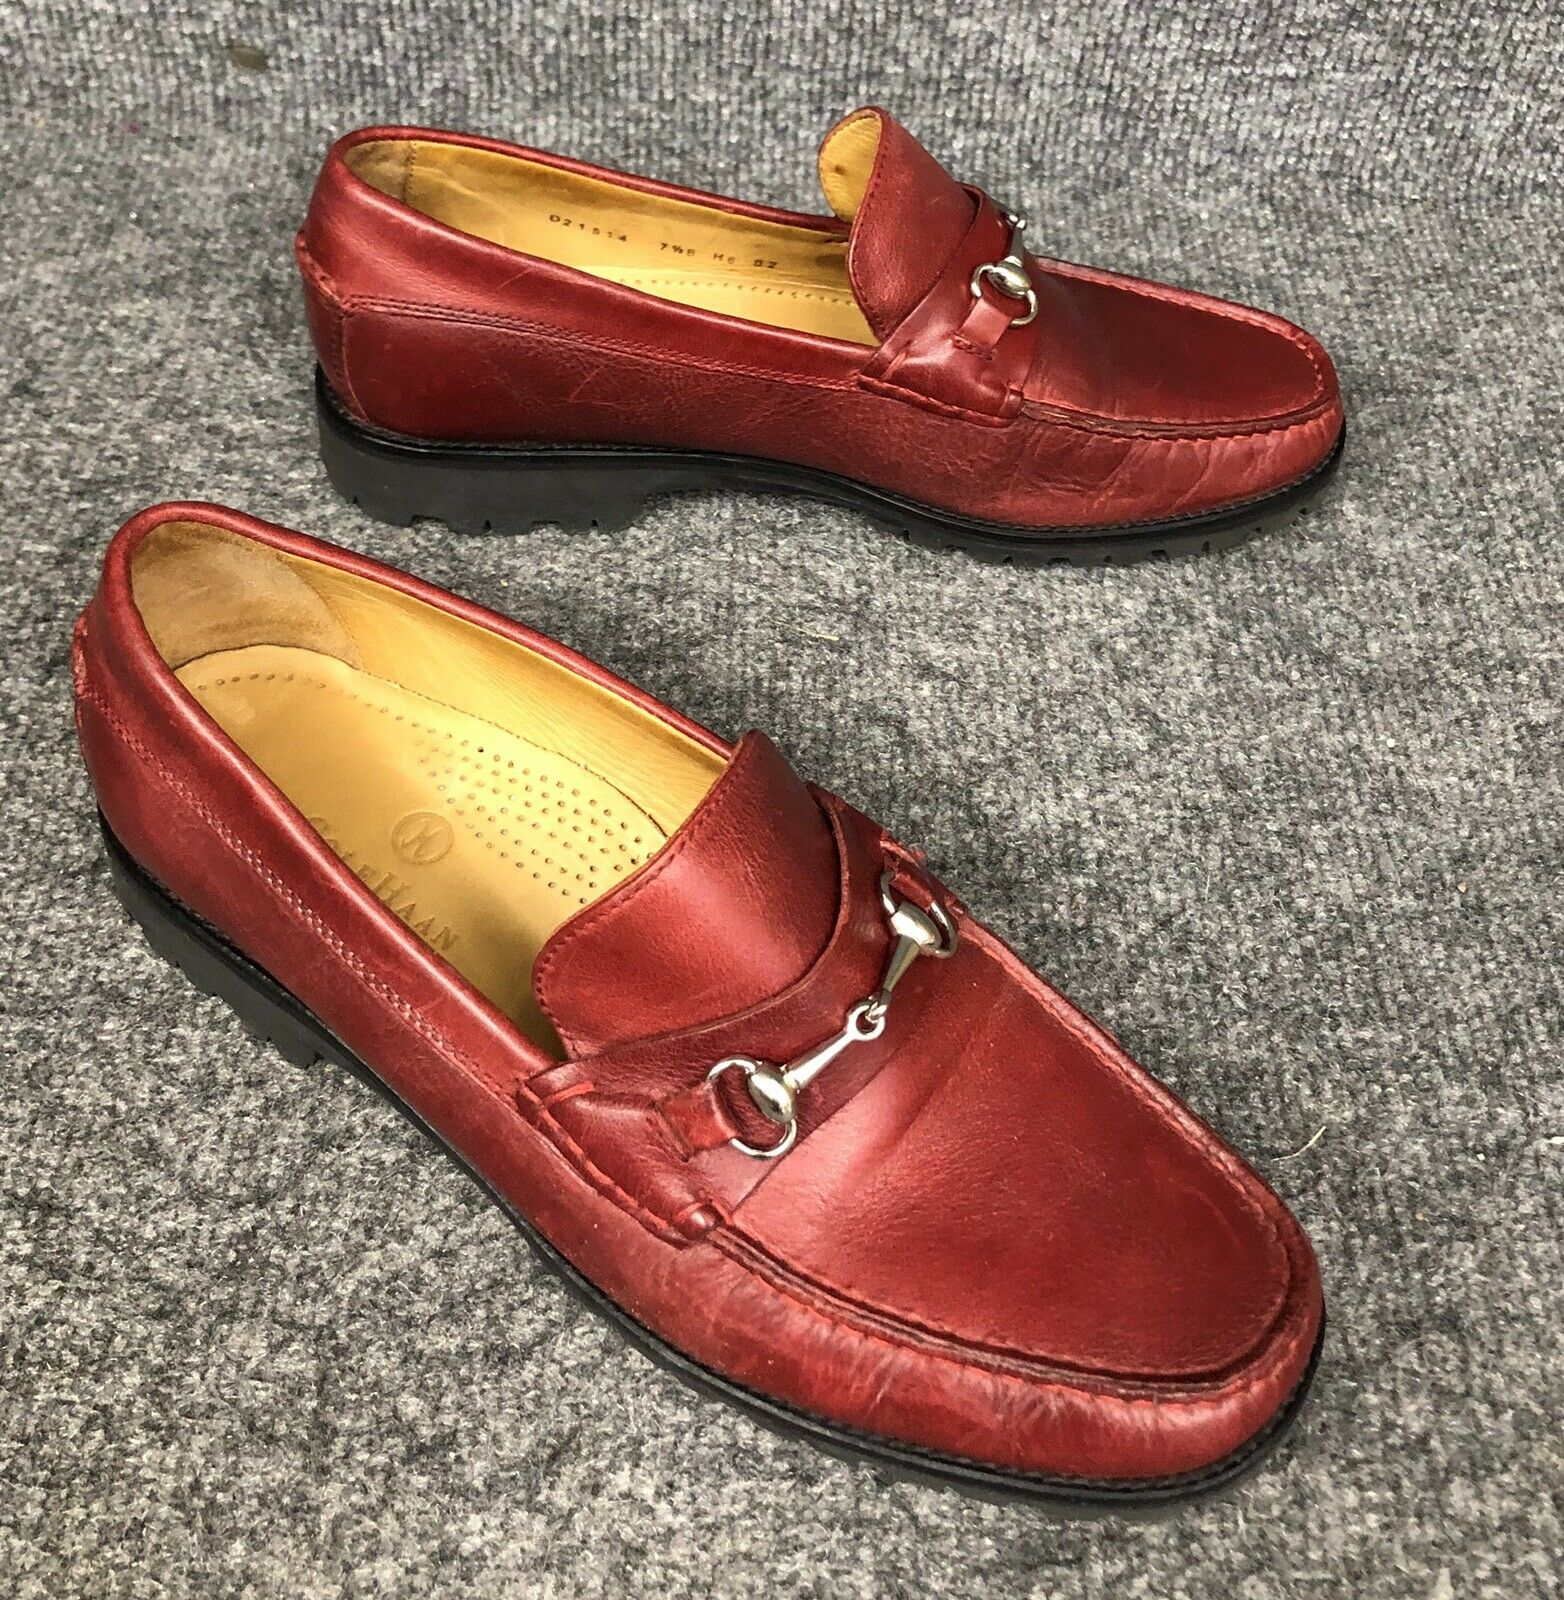 Cole Haan Women's Red Leather Slip On Loafer shoes Sz 7.5B In EUC